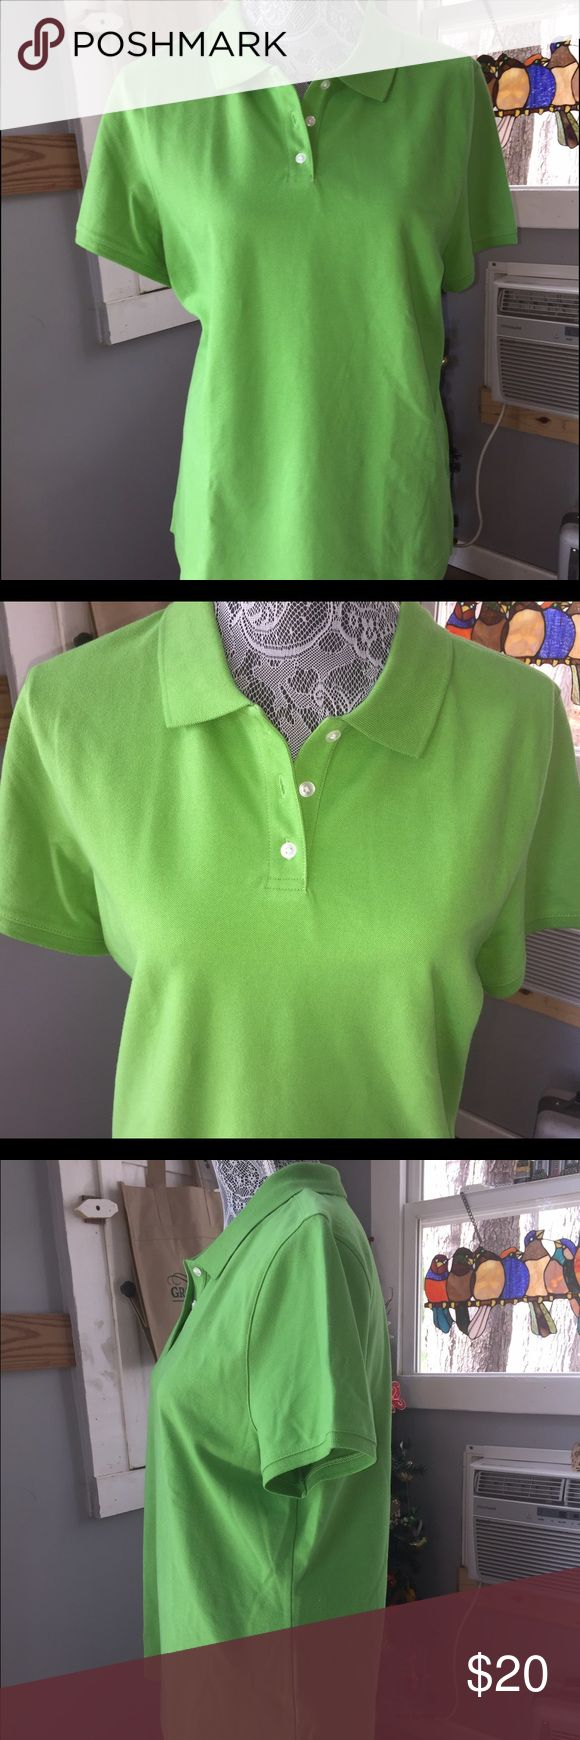 Talbots green polo shirt Talbots 3-button collared polo shirt. Like new. 95%cotton. Machine wash and dry. Talbots Tops